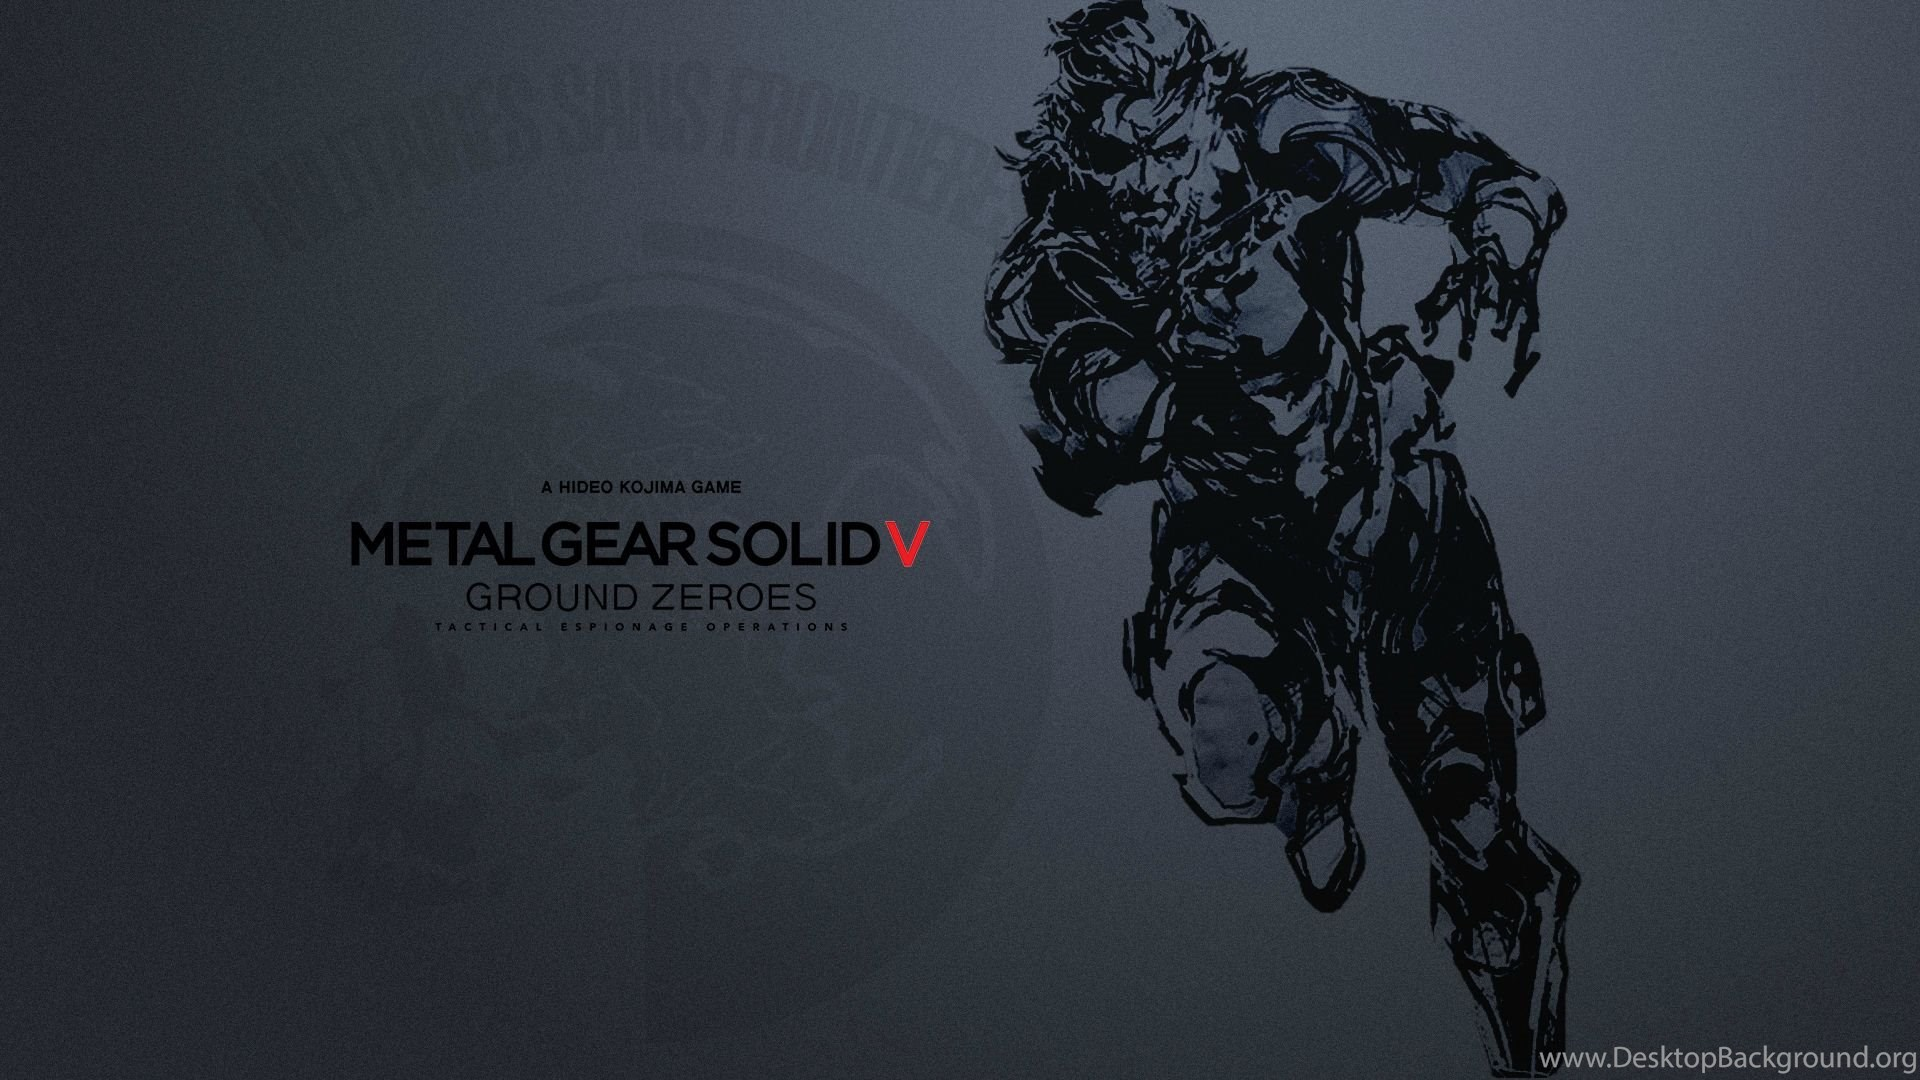 Metal Gear Solid Hd Wallpapers Desktop Background